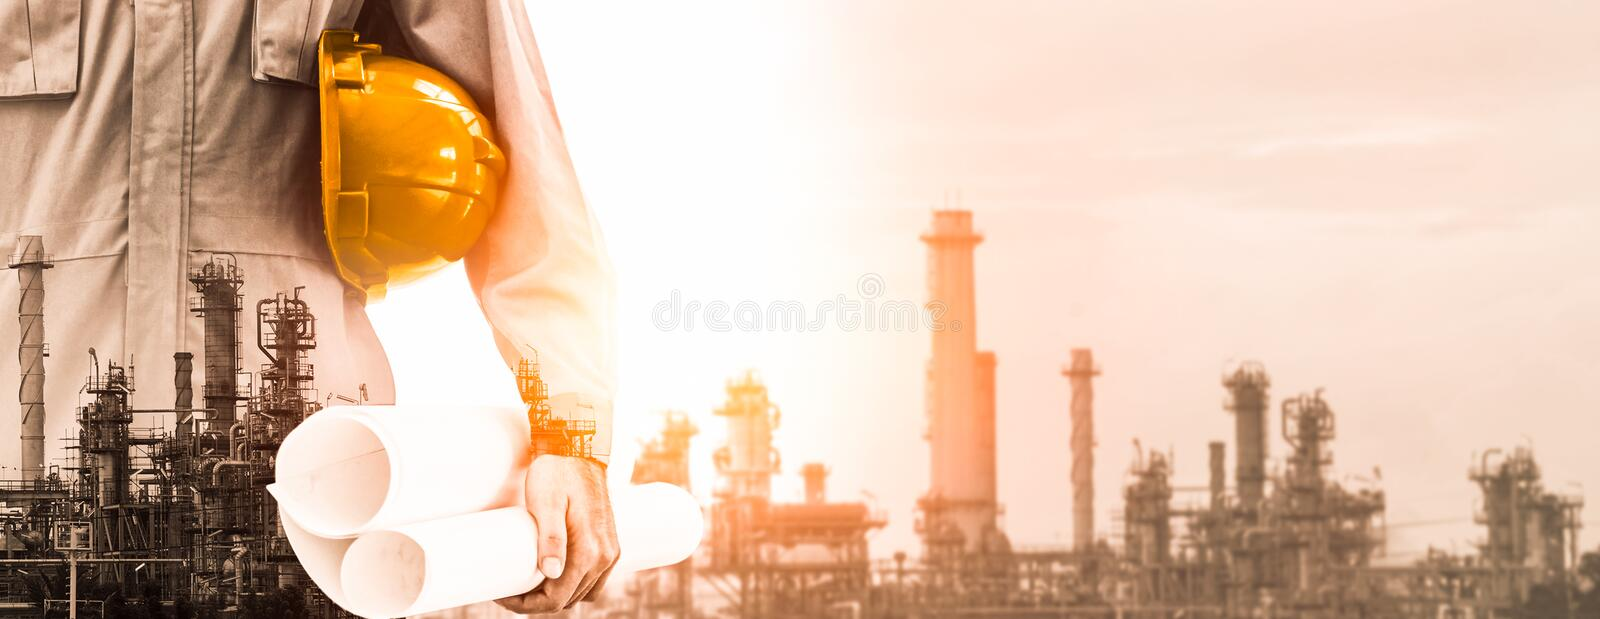 Future factory plant and energy industry concept stock photo